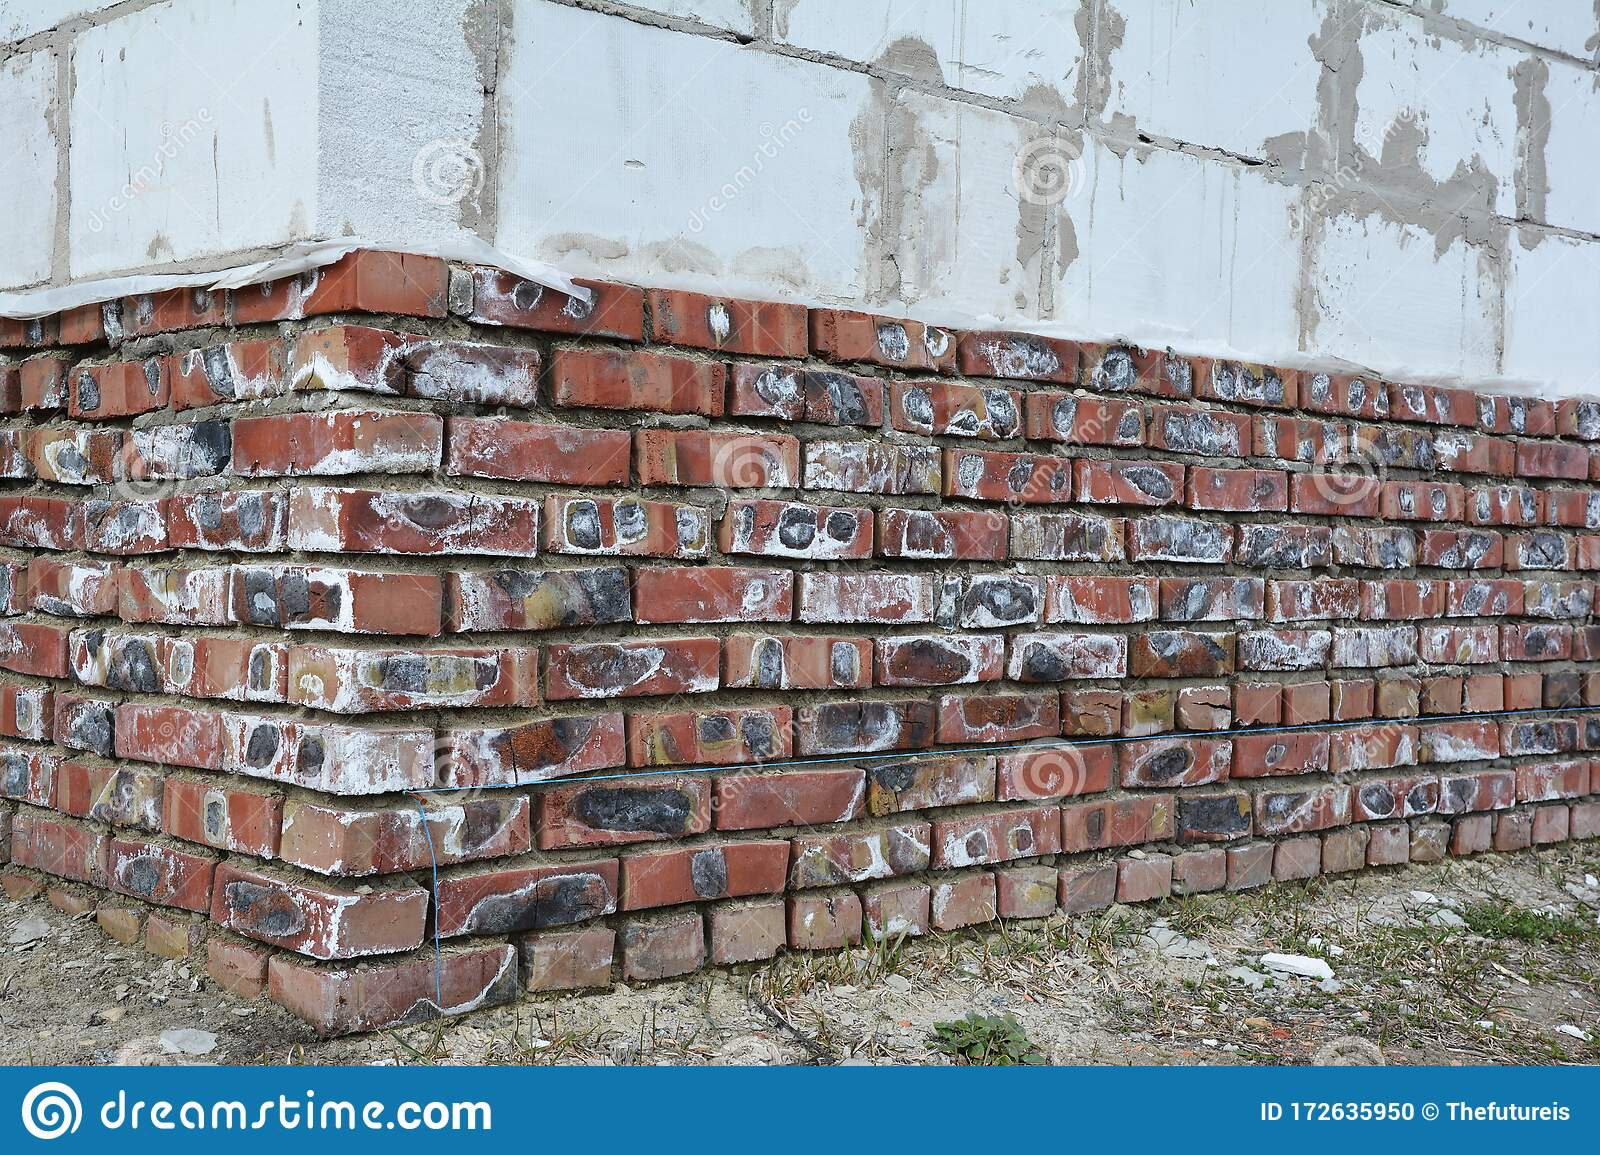 Mineral Efflorescence On Brick House Foundation Wall Efflorescence Salt As An Indicator Of Moisture Problems In House Building Stock Photo Image Of Basement Salts 172635950